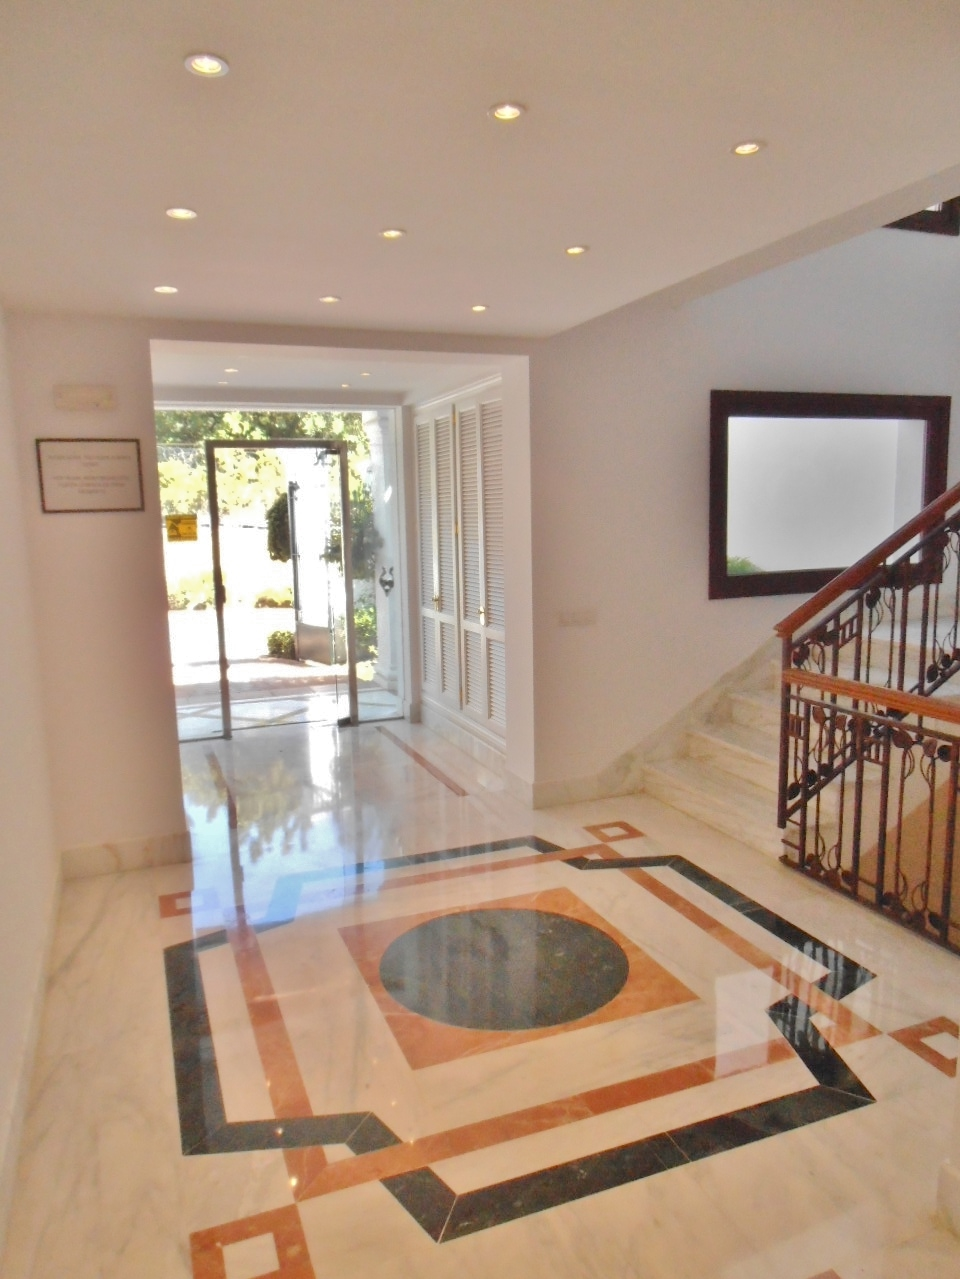 A5380 Luxury Apartment in Marbella 4